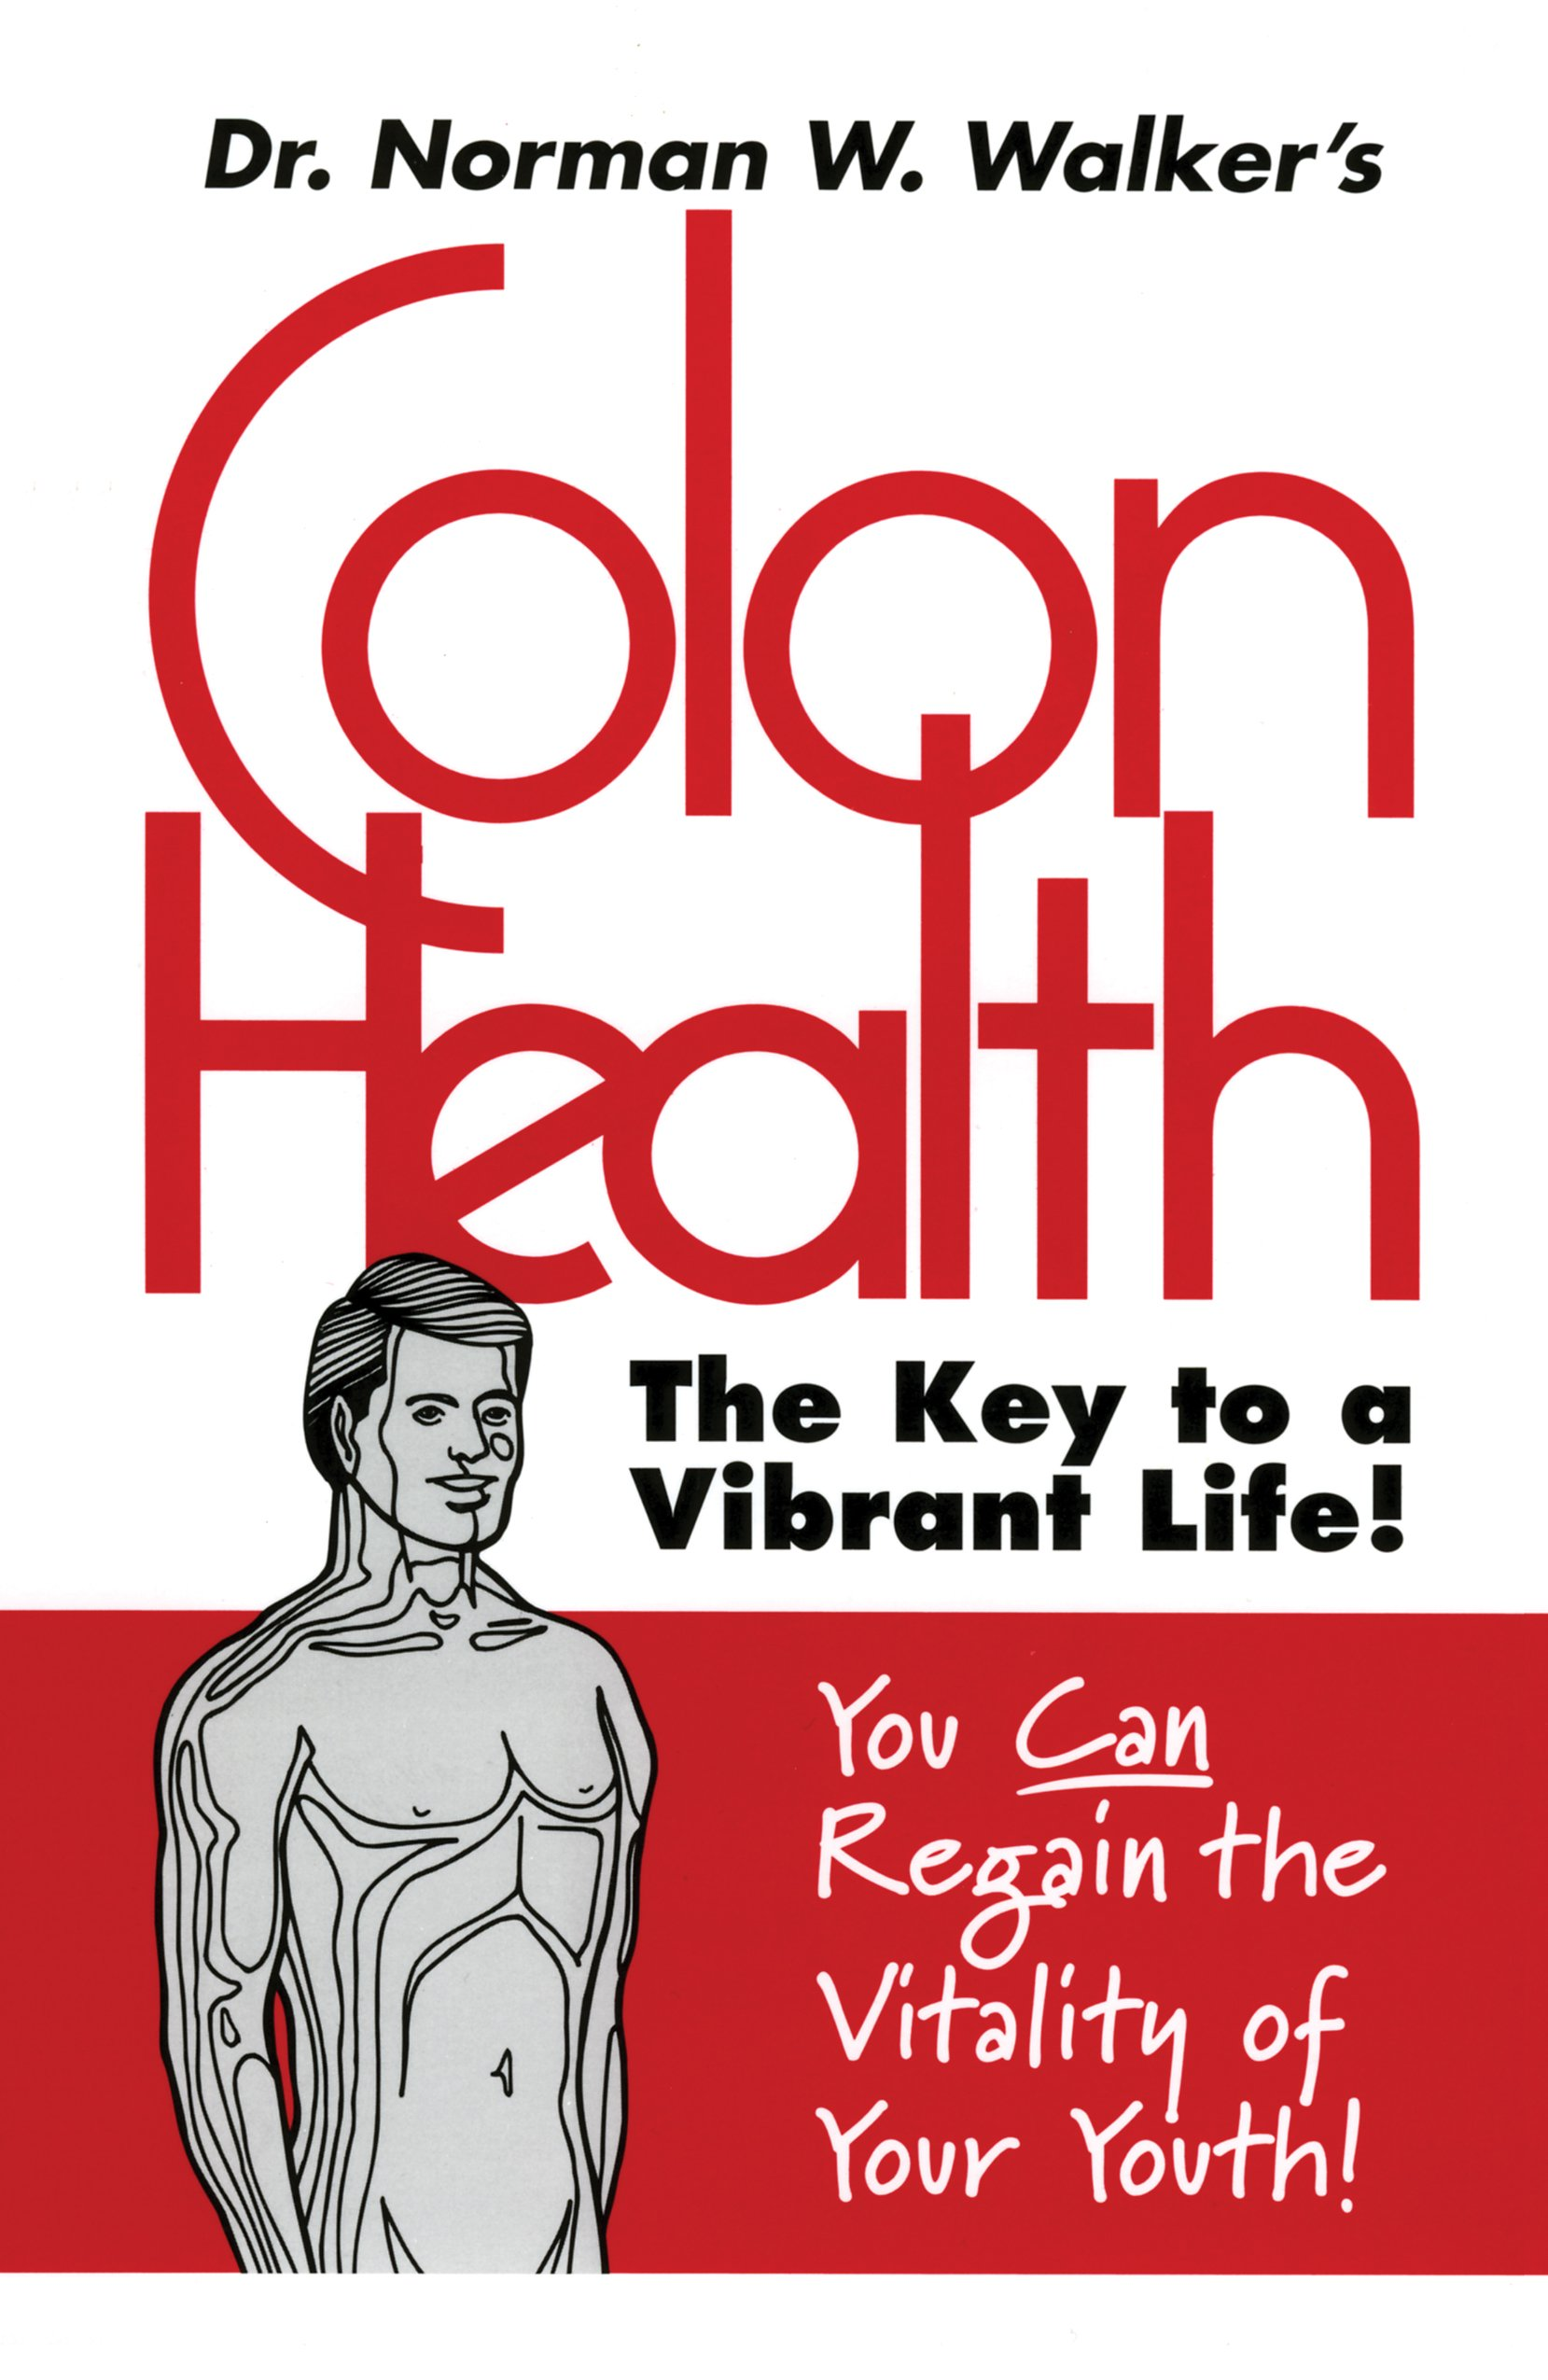 colon health: key to vibrant life - by Norman WalkerDr. Walker focuses your full attention on this forgotten part of the body. He will lead you on a tour of each vital organ of your body explaining how it is affected by the condition of the large intestine, the colon. Learn how through proper care of the colon you can prevent and experience relief from constipation, asthma, colds, allergies, respiratory disorders, digestive problems and numerous other ailments.Dr. Norman W. Walker is one of the pioneers of the raw foods movement and is recognized throughout the world as one of the most authoritative voices on life, health and nutrition. Dr. Walker shares his secret to a long, healthy, productive life through his internationally famous books on health and nutrition.